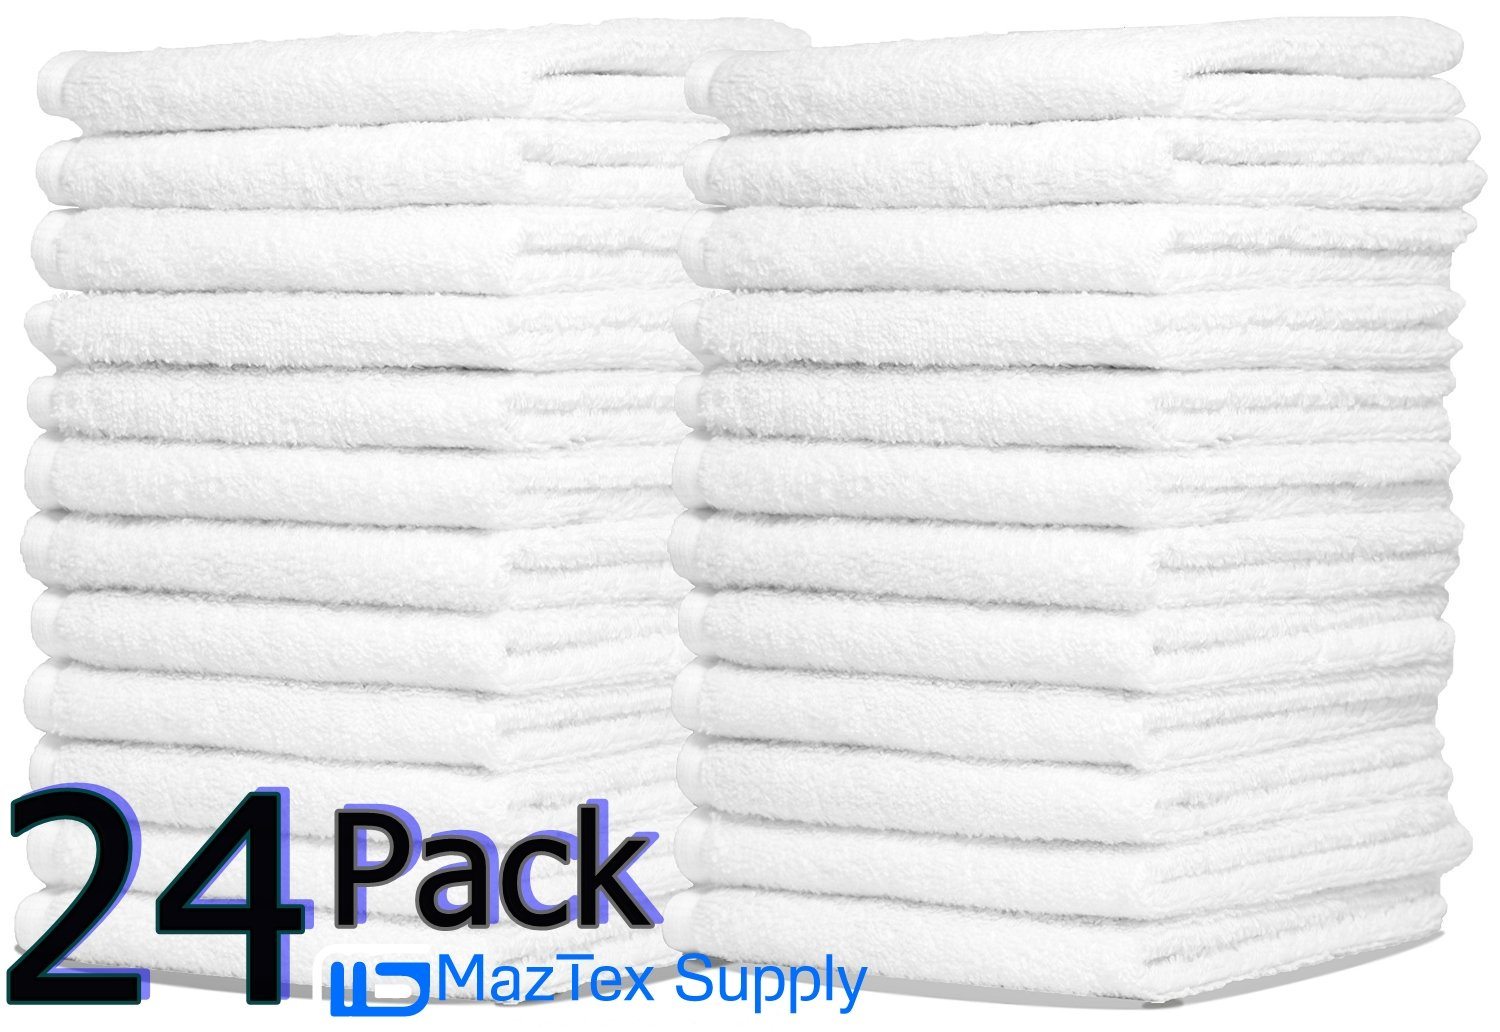 Wash Cloth 24-Pack,100% Natural Cotton, (12 x 12 ) , Commercial Grade, for use in Bathroom, Kitchen, Nursery and for Cleaning, Soft and Absorbent, Machine Washable By Omni Linens OMNI LINENS